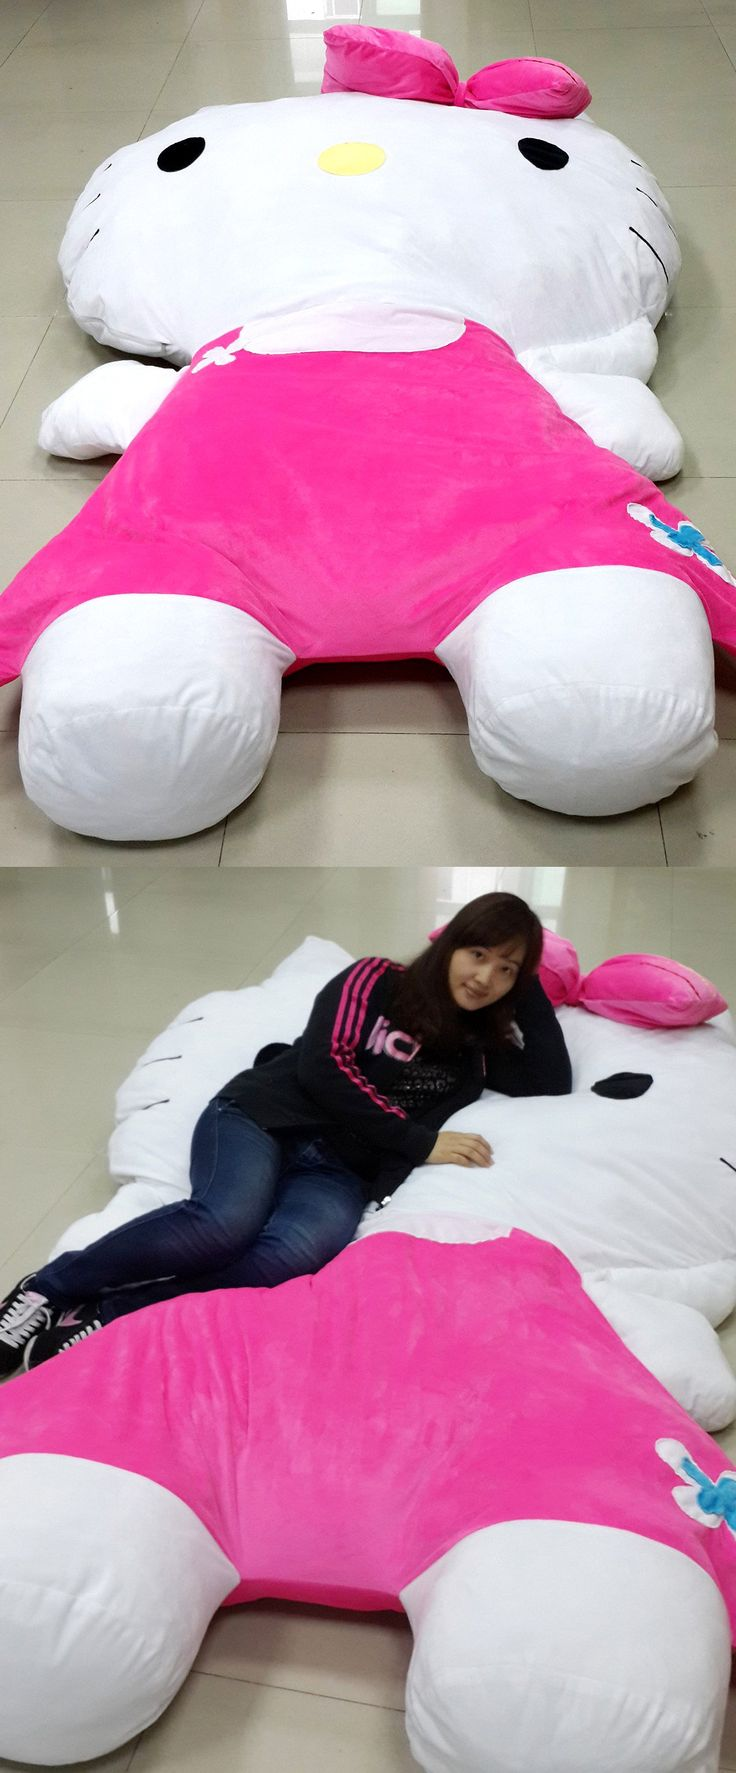 Snuggle softly to sleep with Japan's famous feline on this gigantic Hello Kitty bed. Made only with the softest and delicate fabric materials, this novelty sized plush is super comfortable and comes with a removable liner for an easy wash.         I want to make a giant Puppycat like this!!